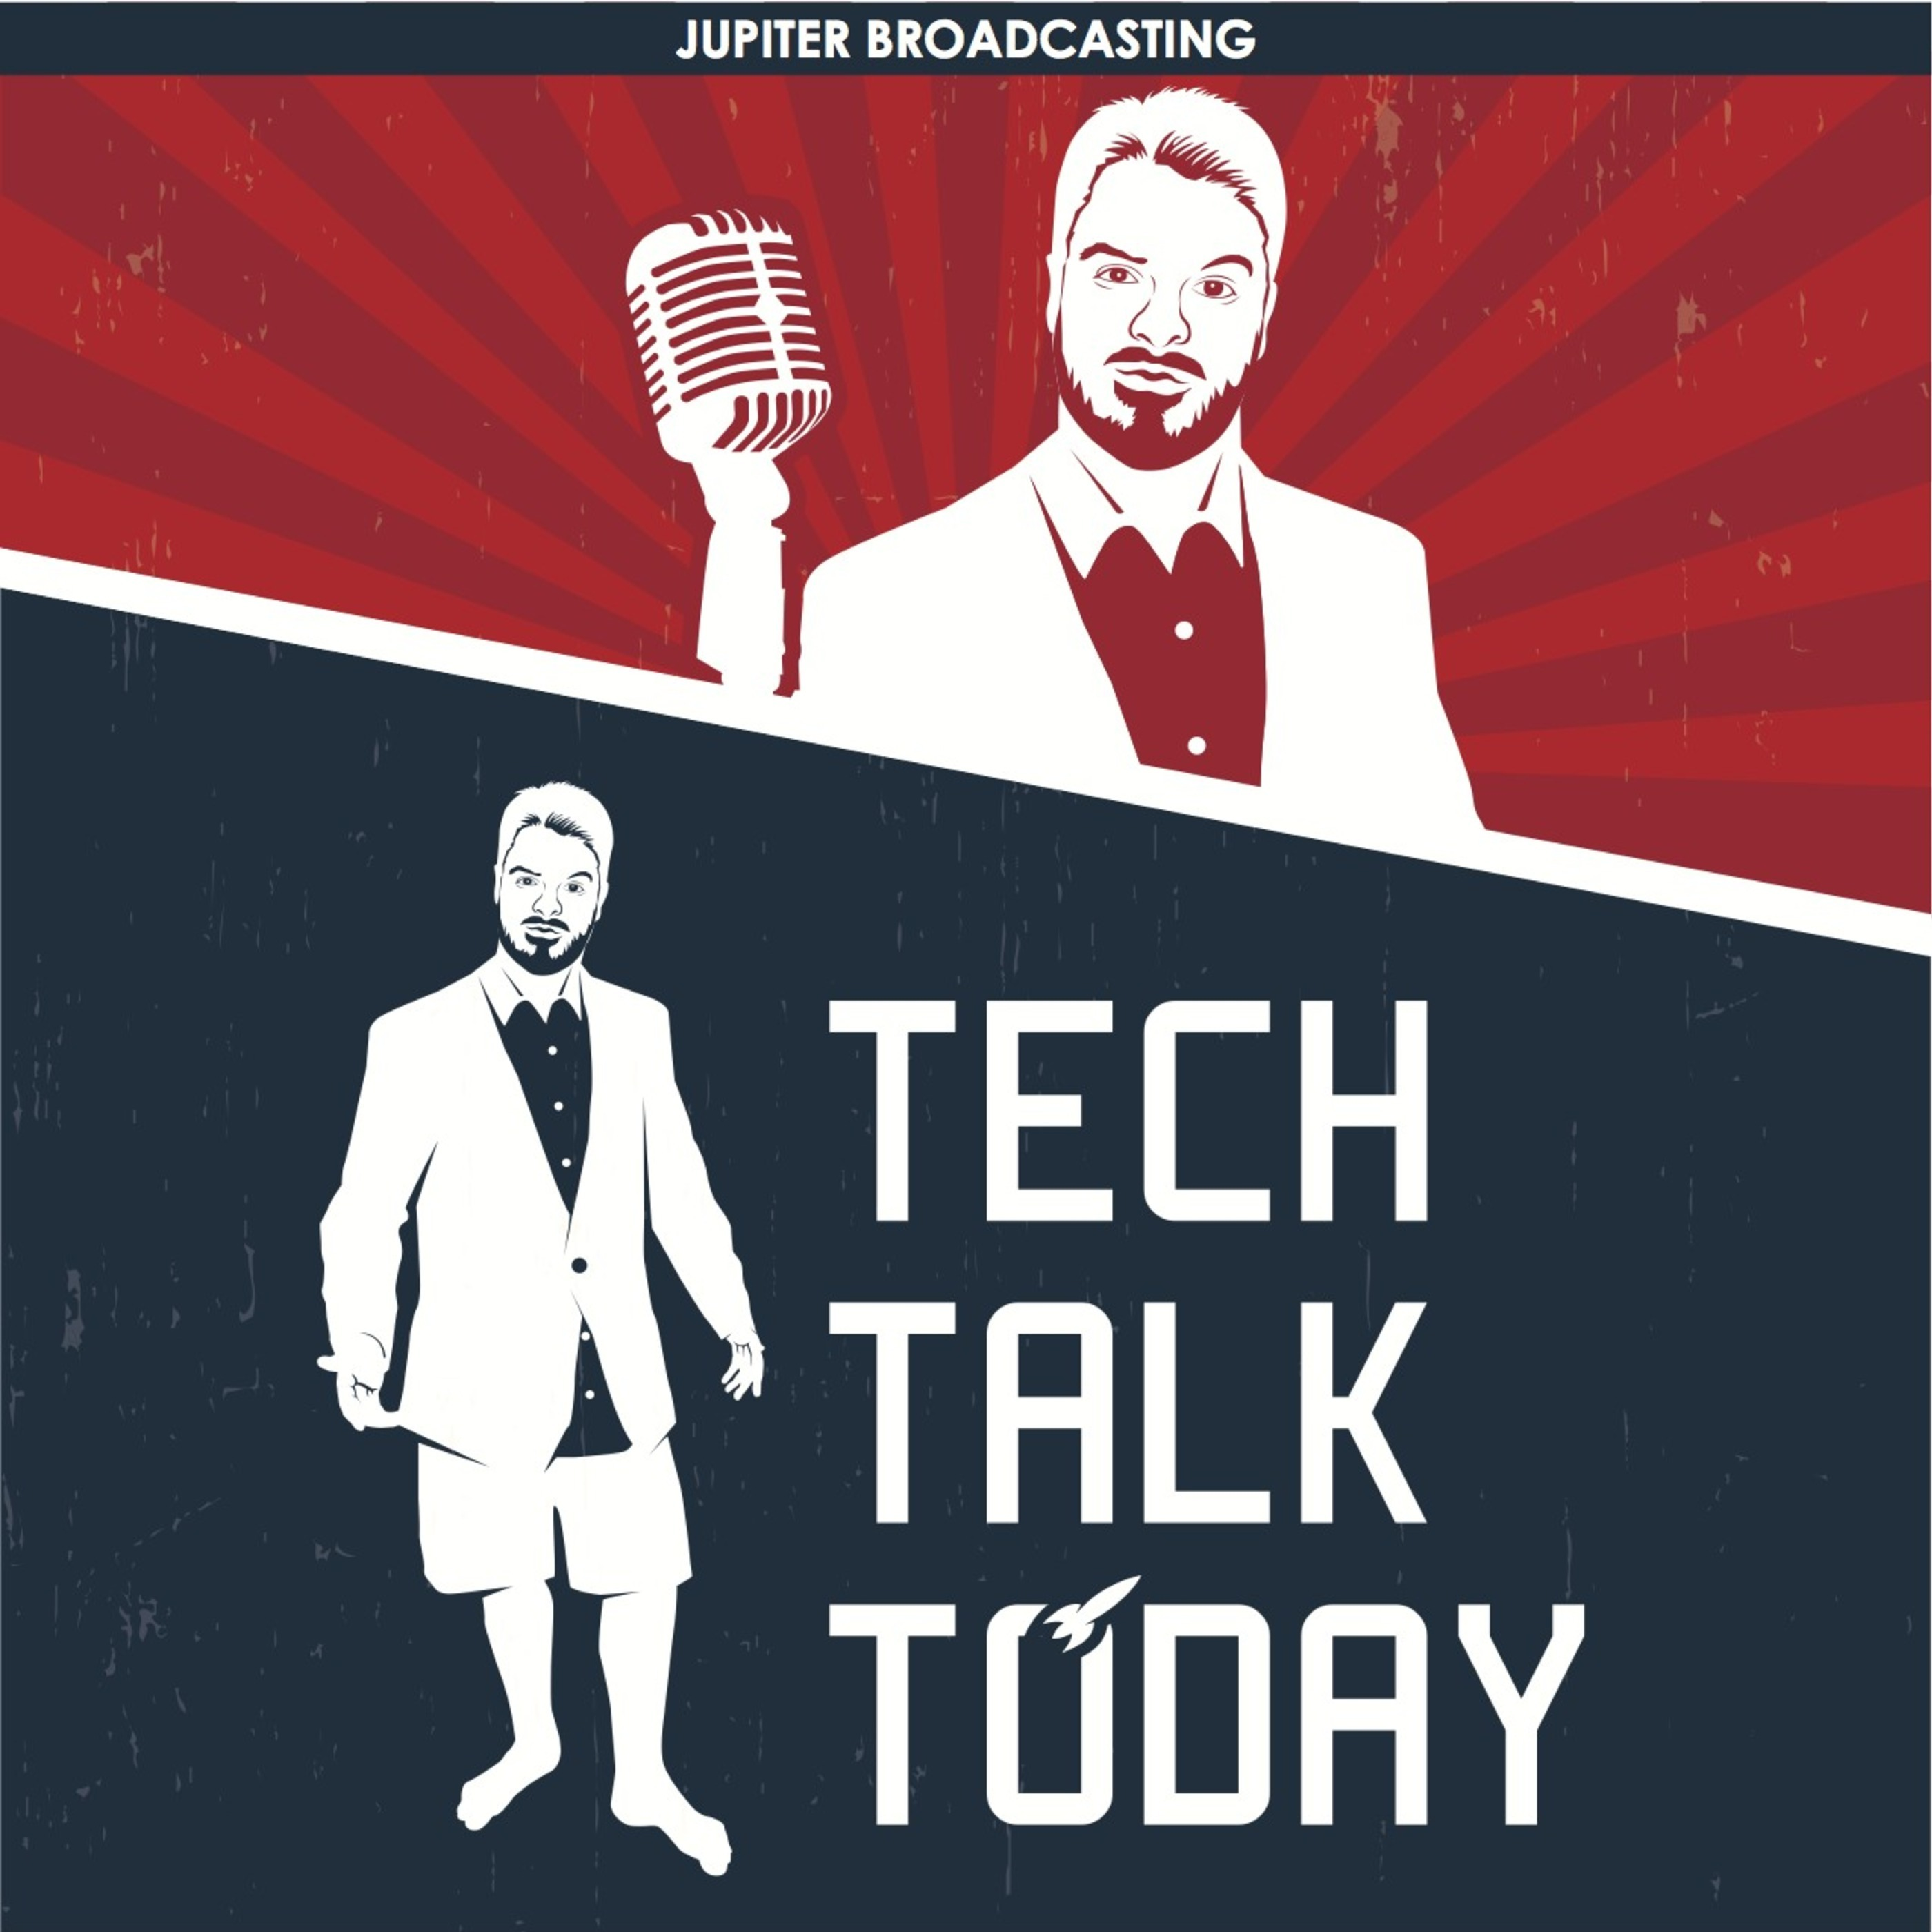 Episode 11: Uber Eats The Competition | Tech Talk Today 164